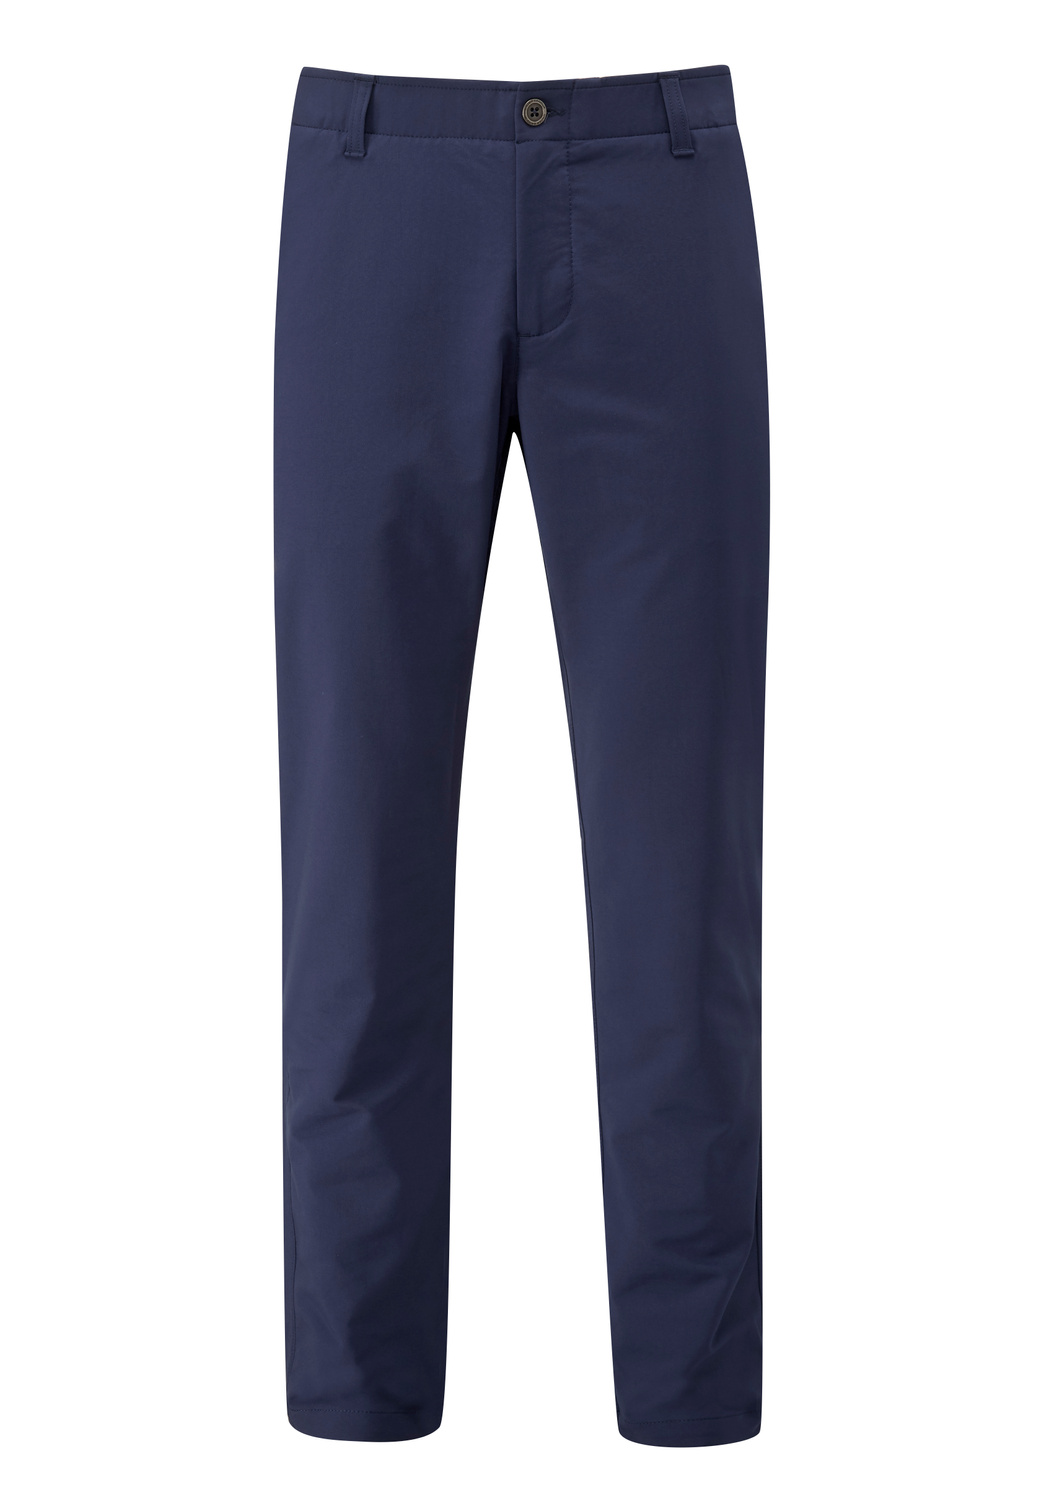 Golfbyxor - Under Armour Golf Performance Taper Pant Svart